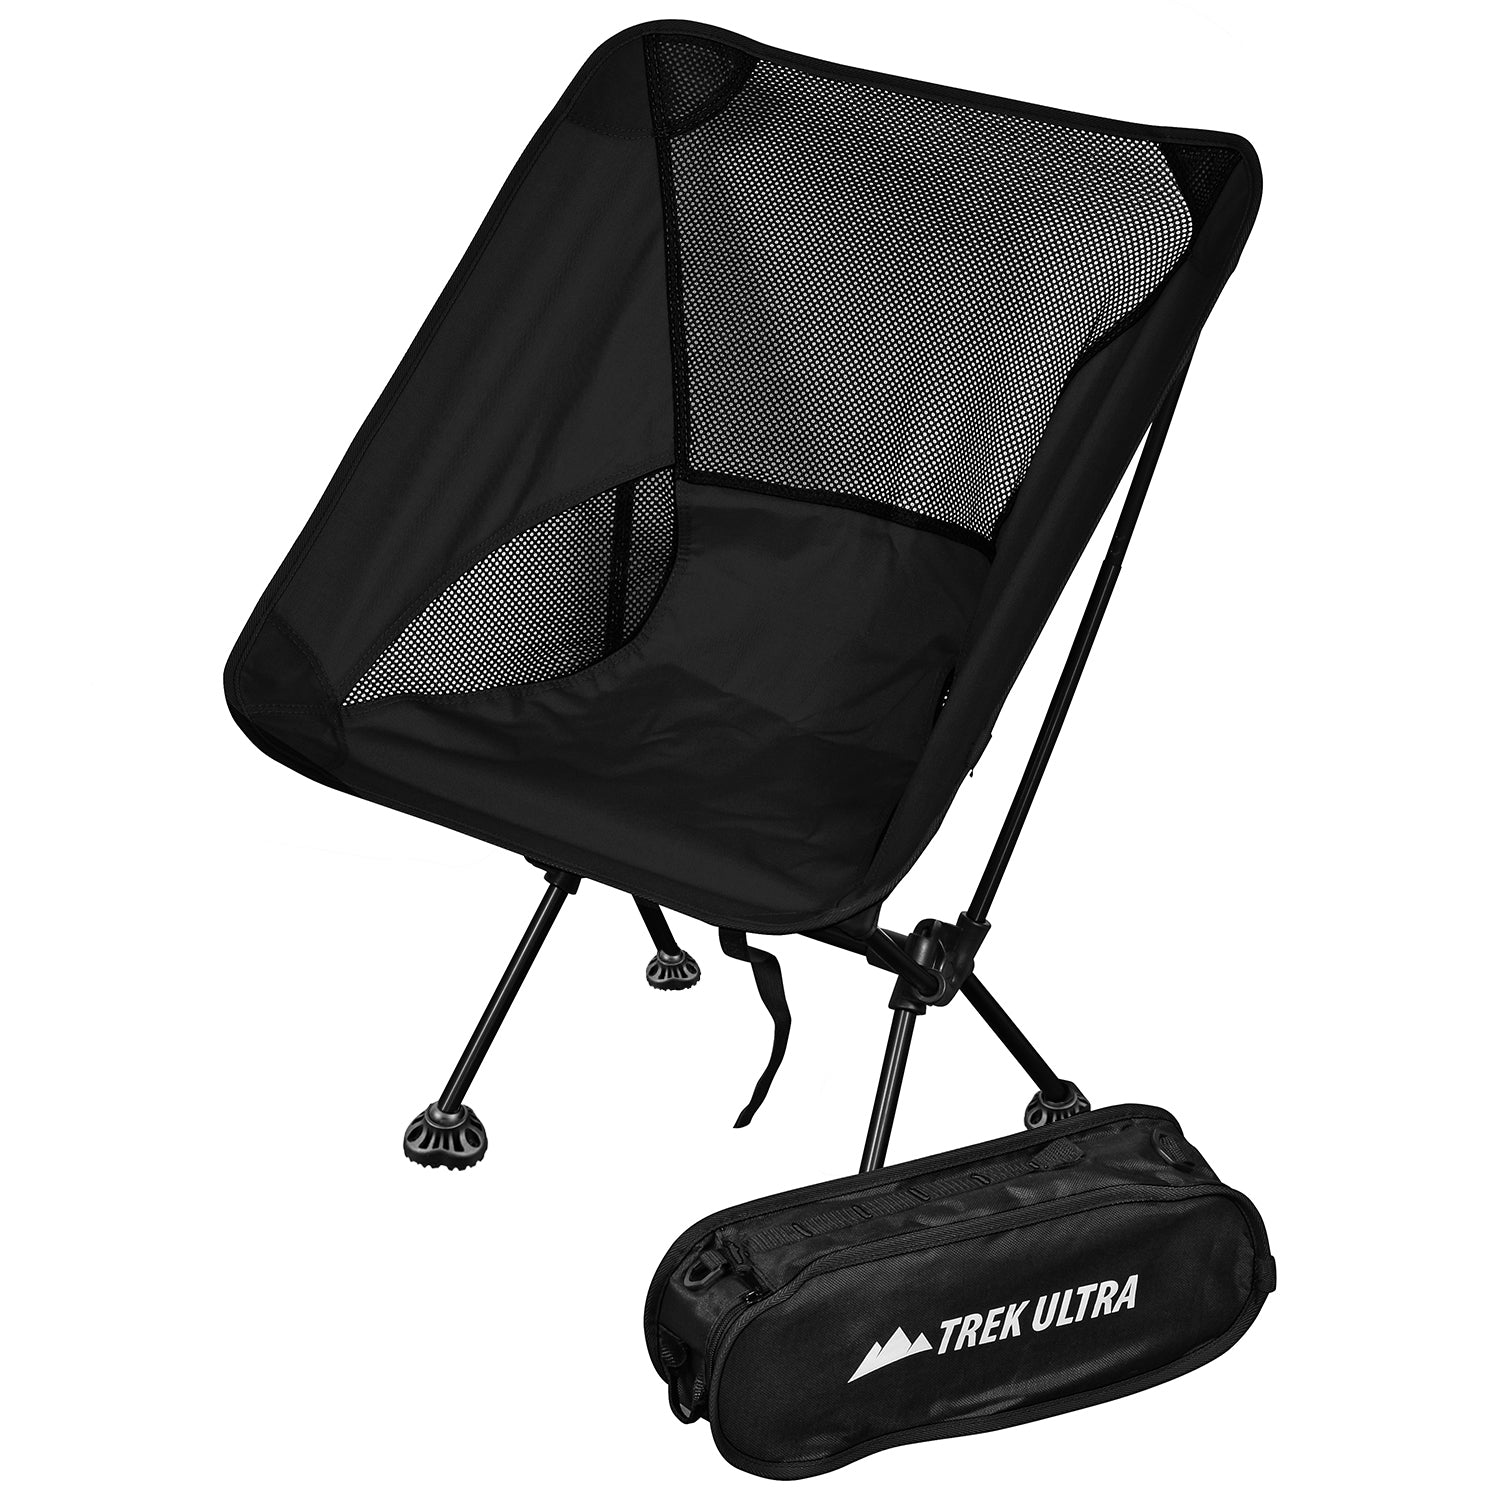 TrekUltra Portable Compact Lightweight C& Chair with Bag - Ultralight Folding C& Chairs - Great Beach ...  sc 1 st  Trek Ultra & TrekUltra Portable Compact Lightweight Camp Chair with Bag - Ultraligh